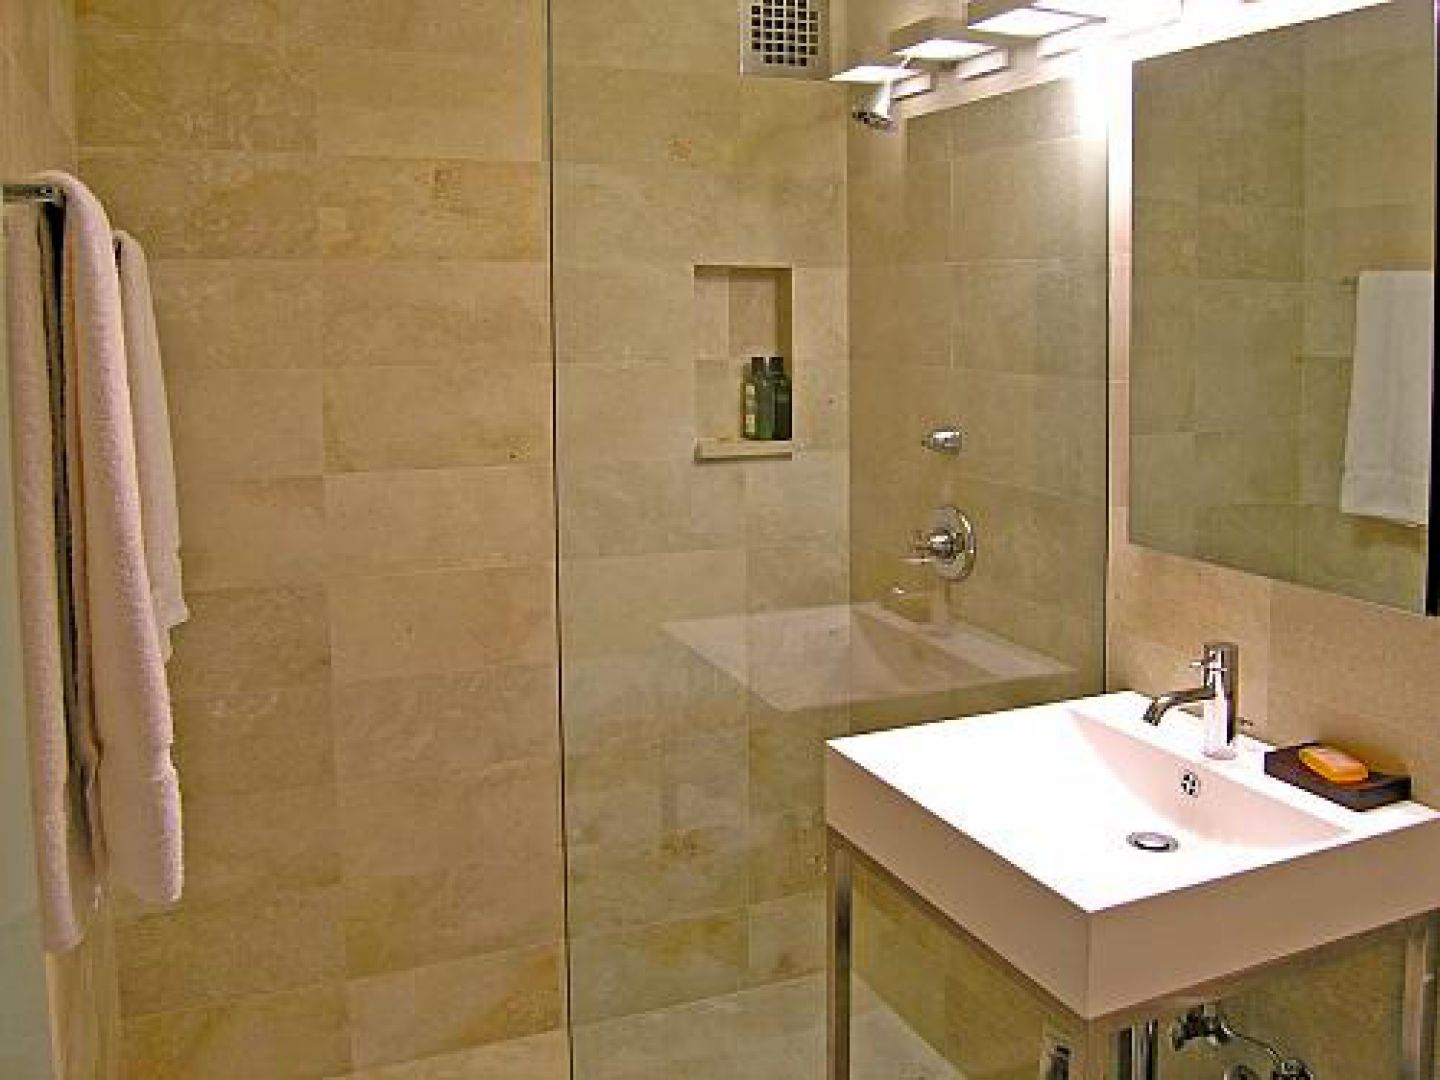 Digital Art Gallery Bathroom Travertine Bathroom Tile Feat Glass Door Shower Room Ideas With Wall Lamp And White Square Sink Appealing Bathroom From Travertine Bathroom